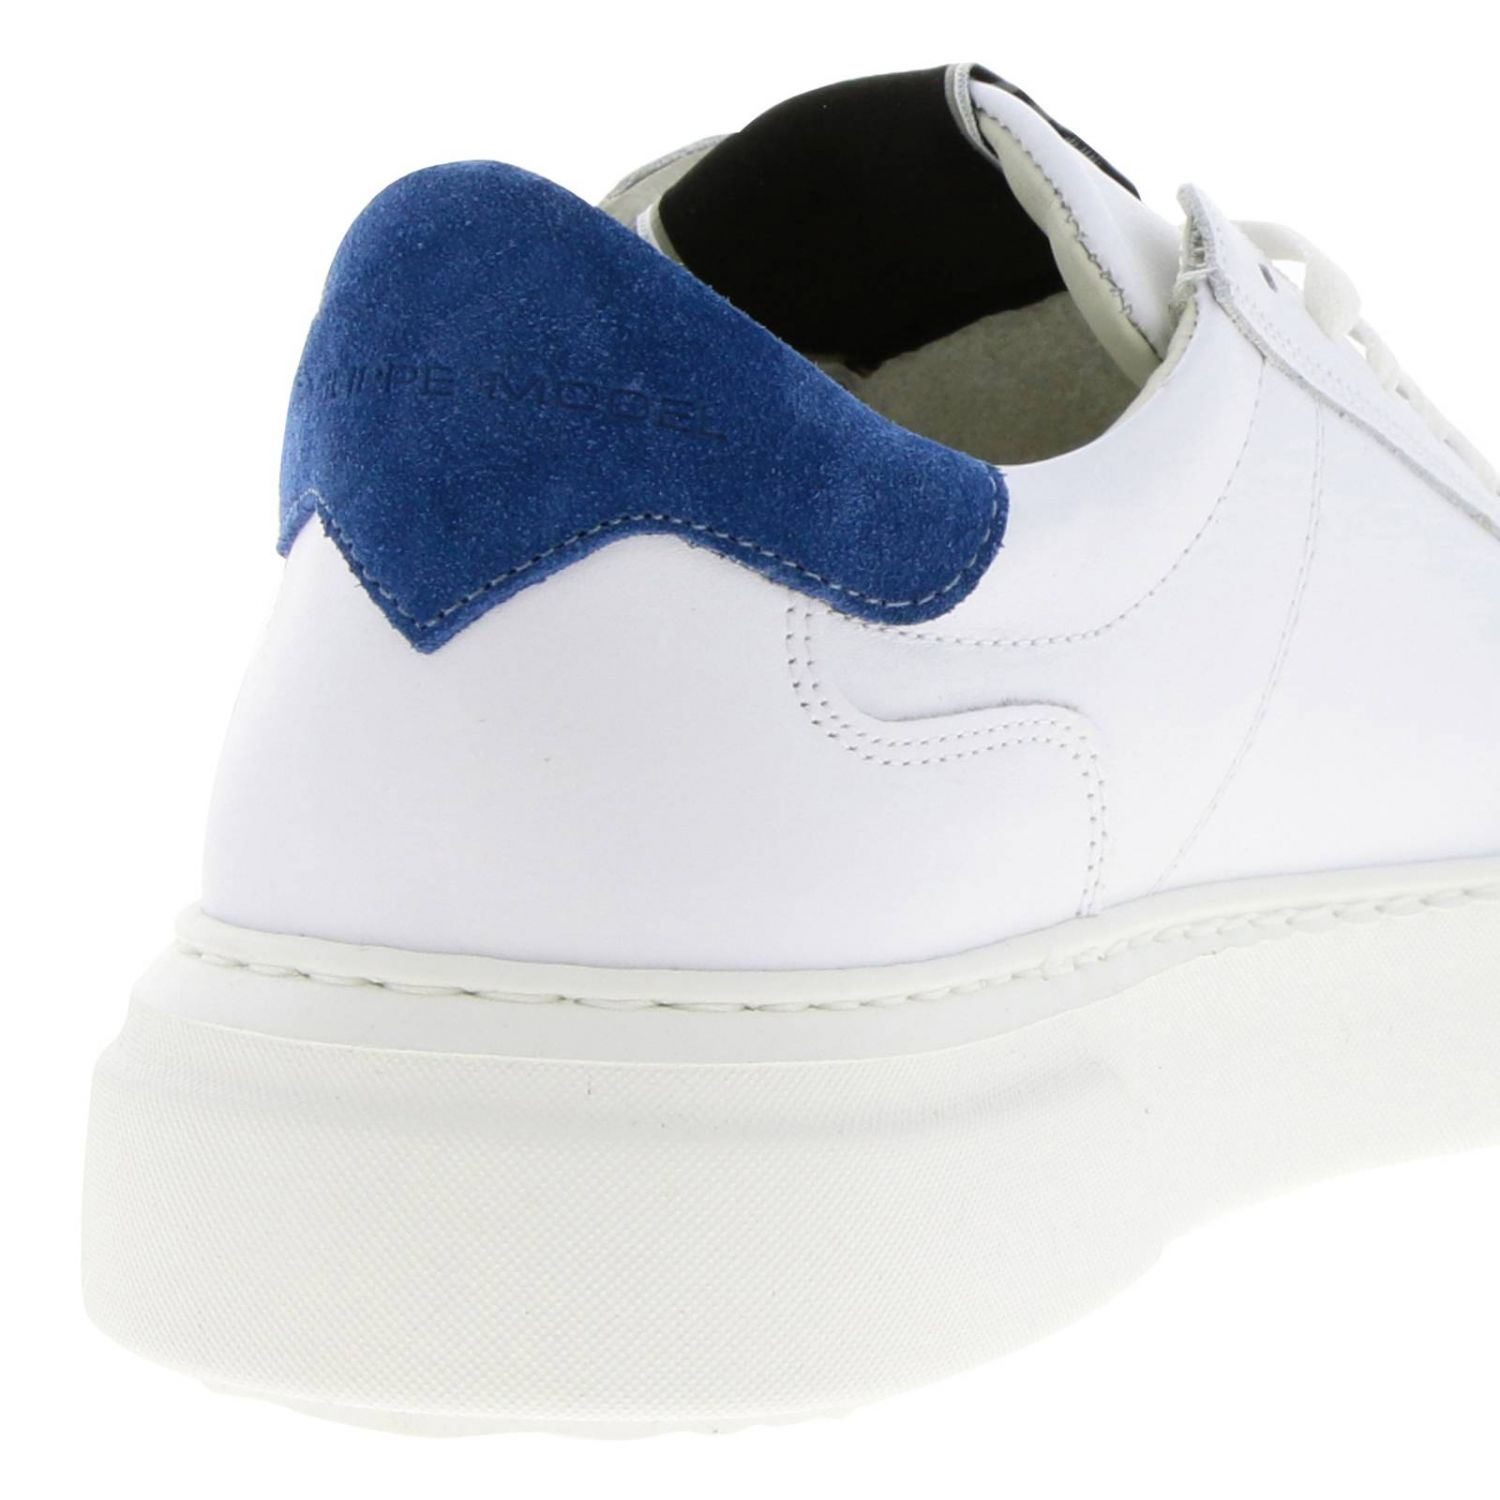 Shoes men Philippe Model blue 4